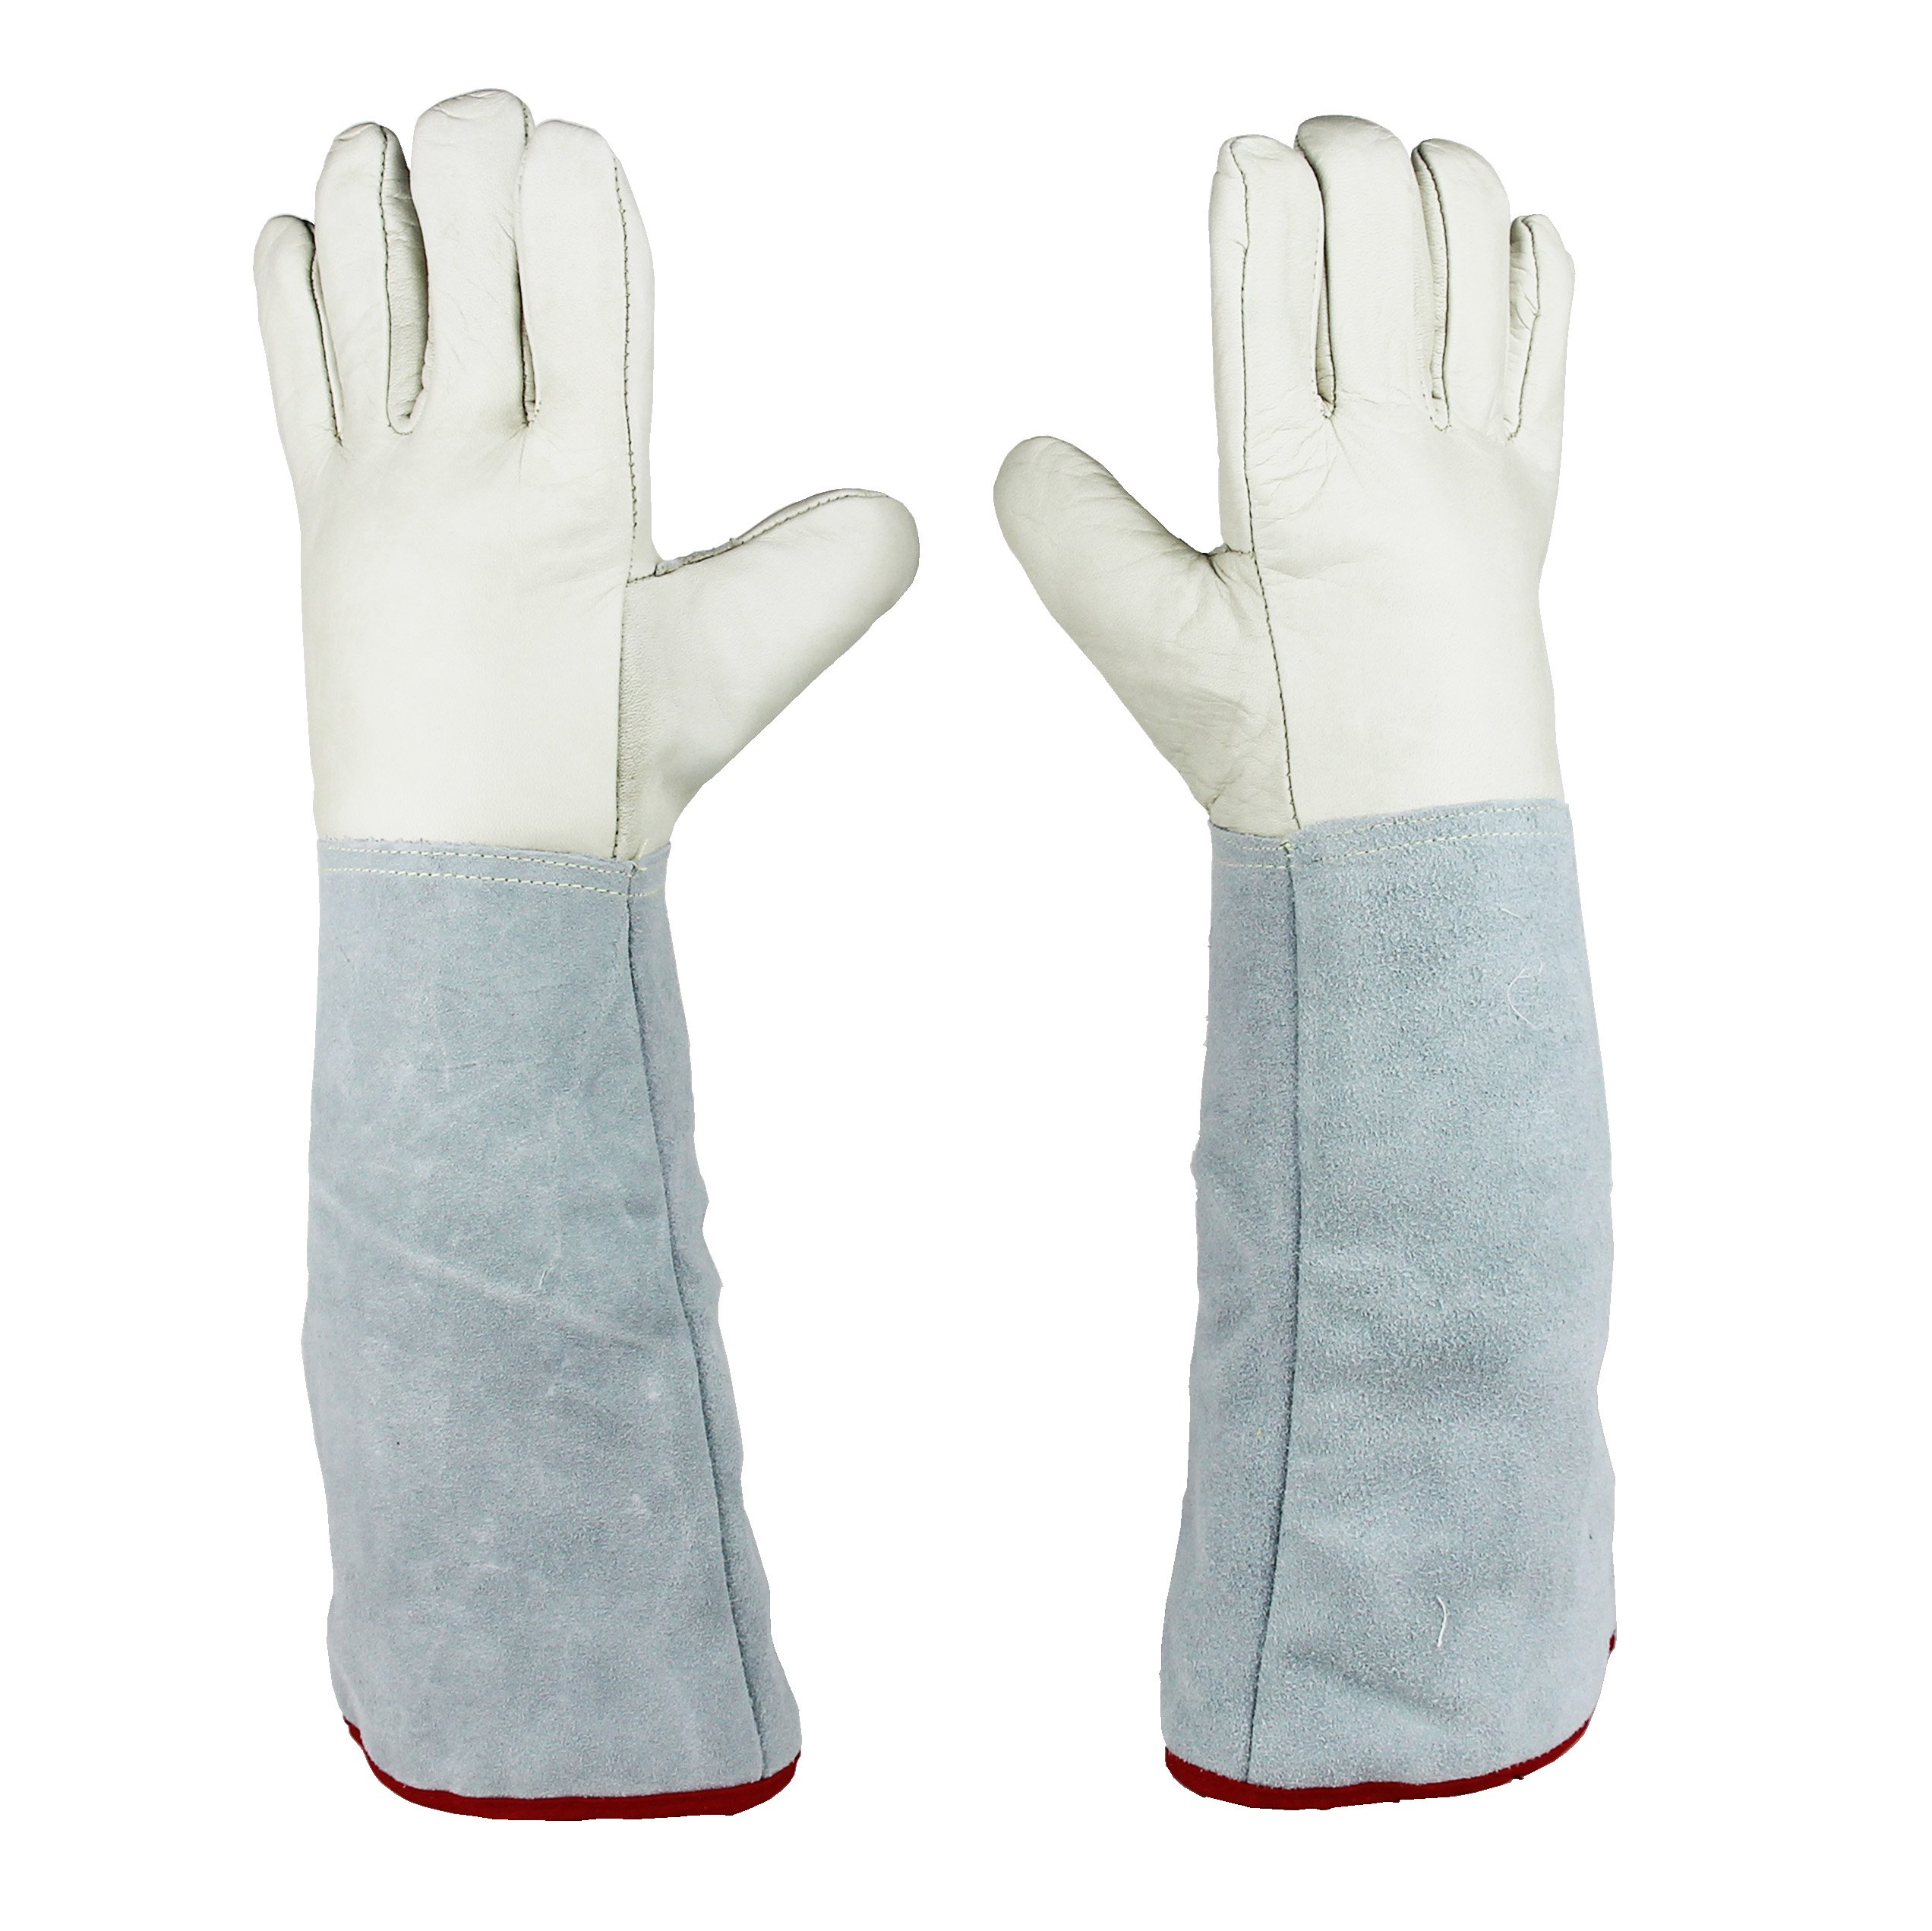 45cm (17.7'') Long Cryogenic Gloves LN2 Liquid Nitrogen Protective Gloves by U.S. Solid (Image #2)